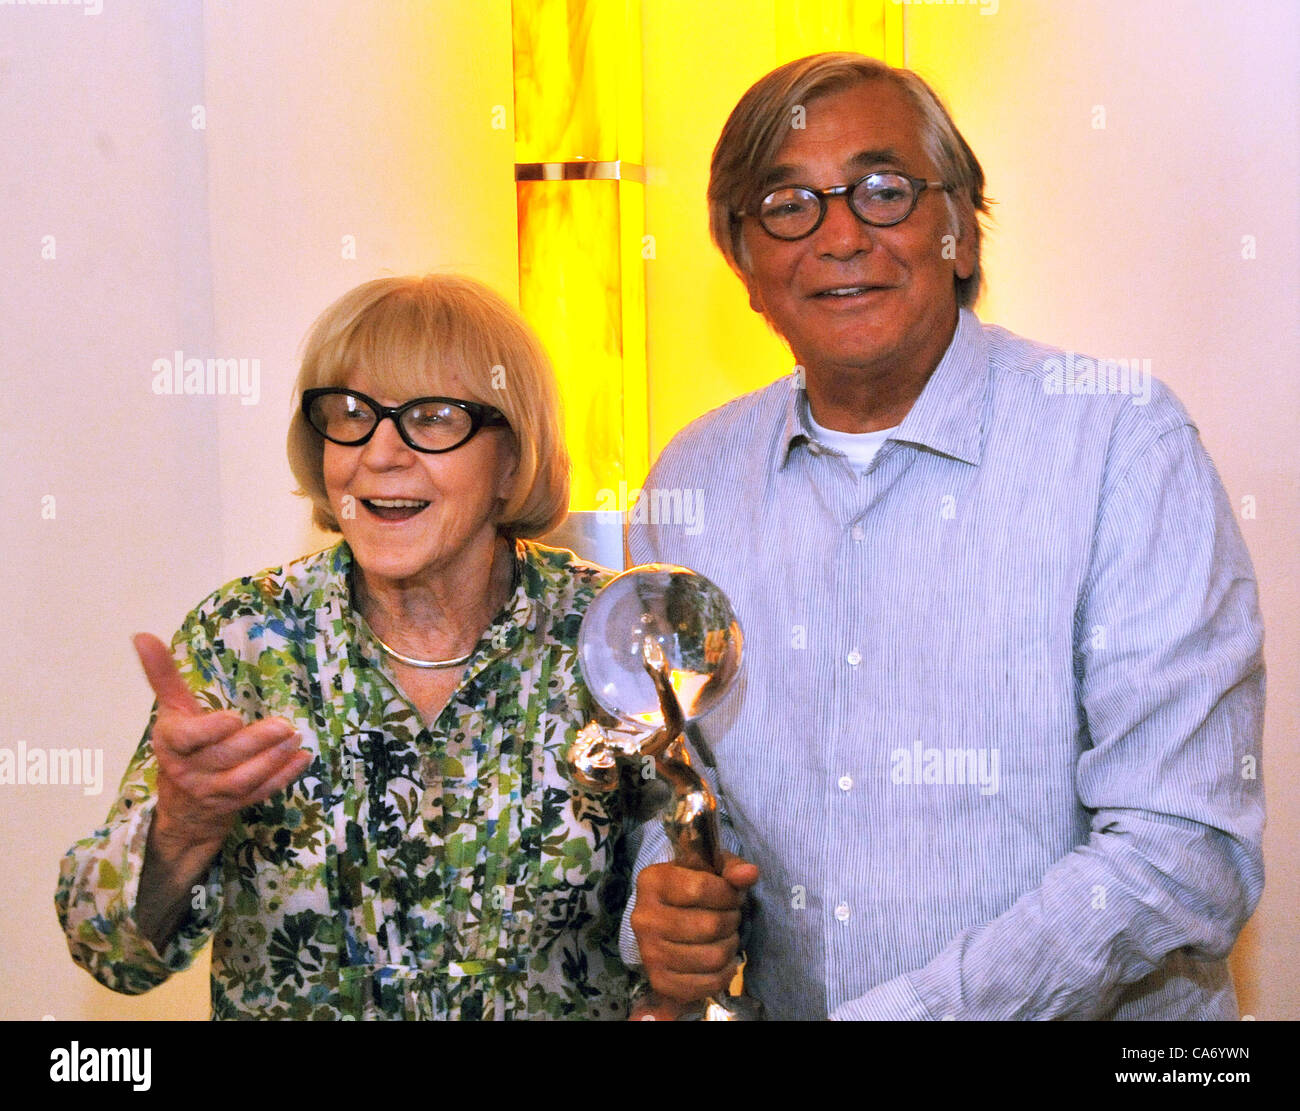 Jiri Bartoska, president of the International Film Festival Karlovy Vary and artistical advisor Eva Zaoralova pictured - Stock Image